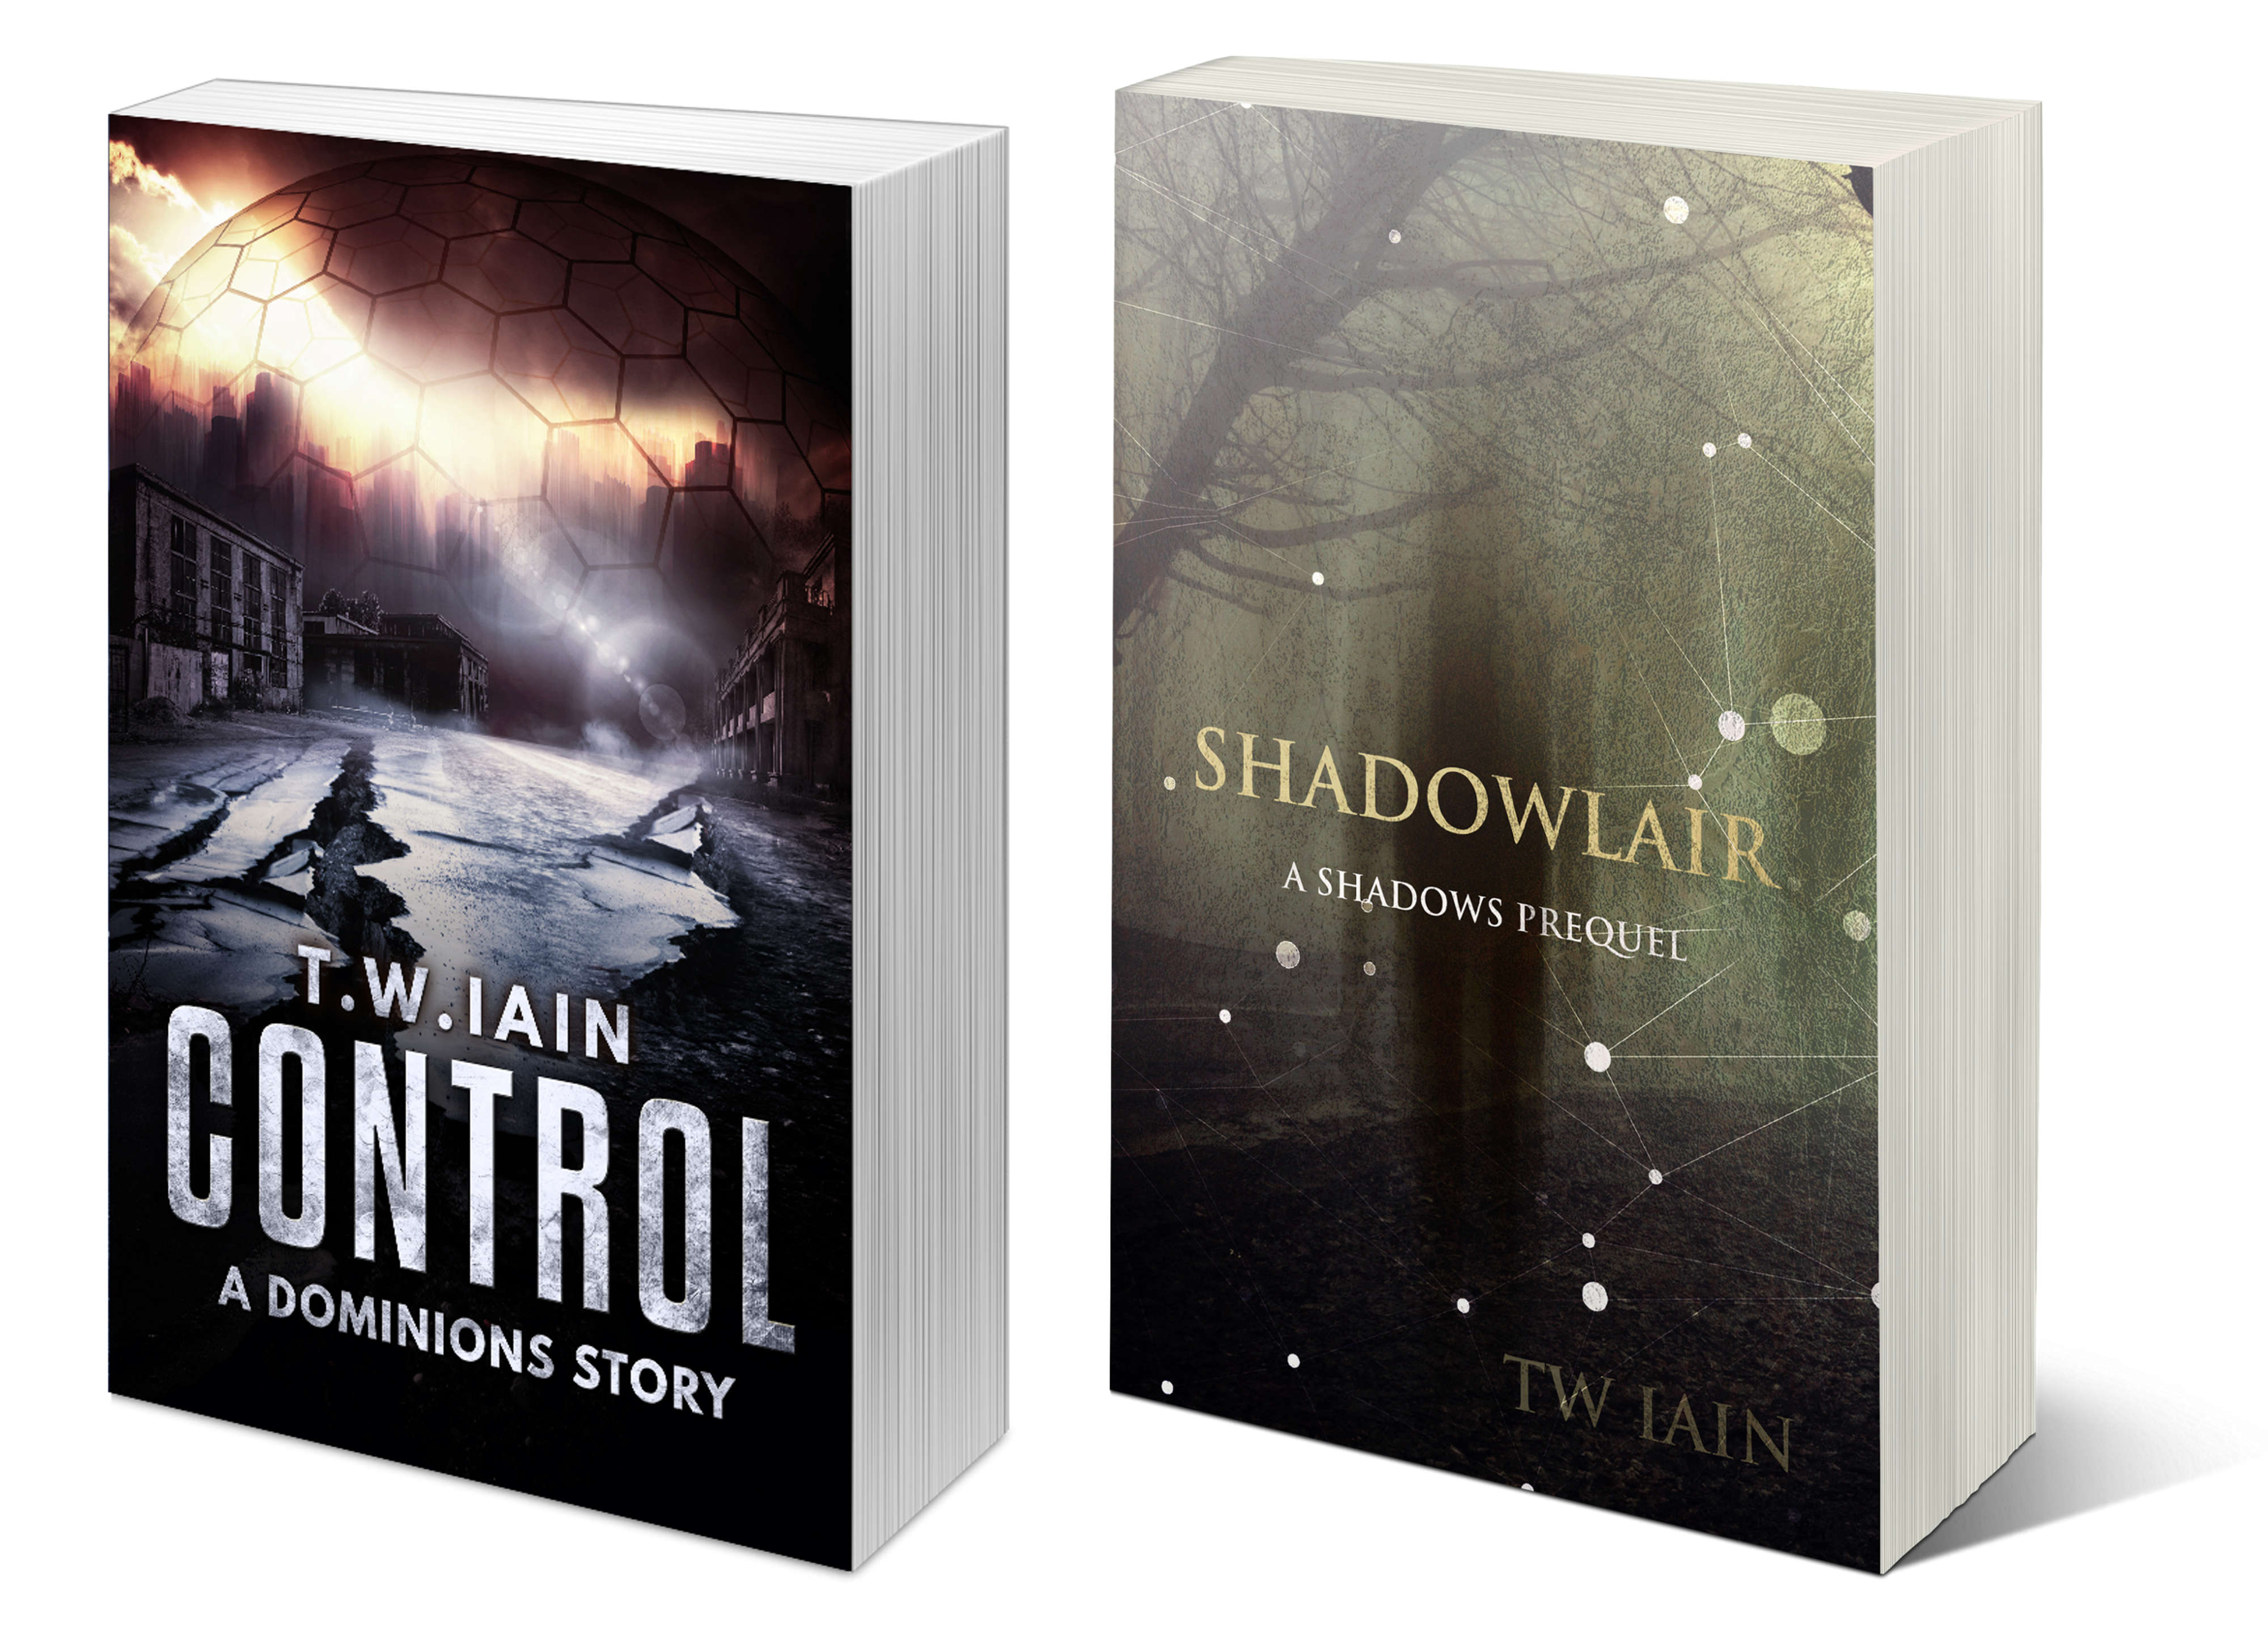 Covers of exclusive novellas, only available to readers to sign up for my newsletter